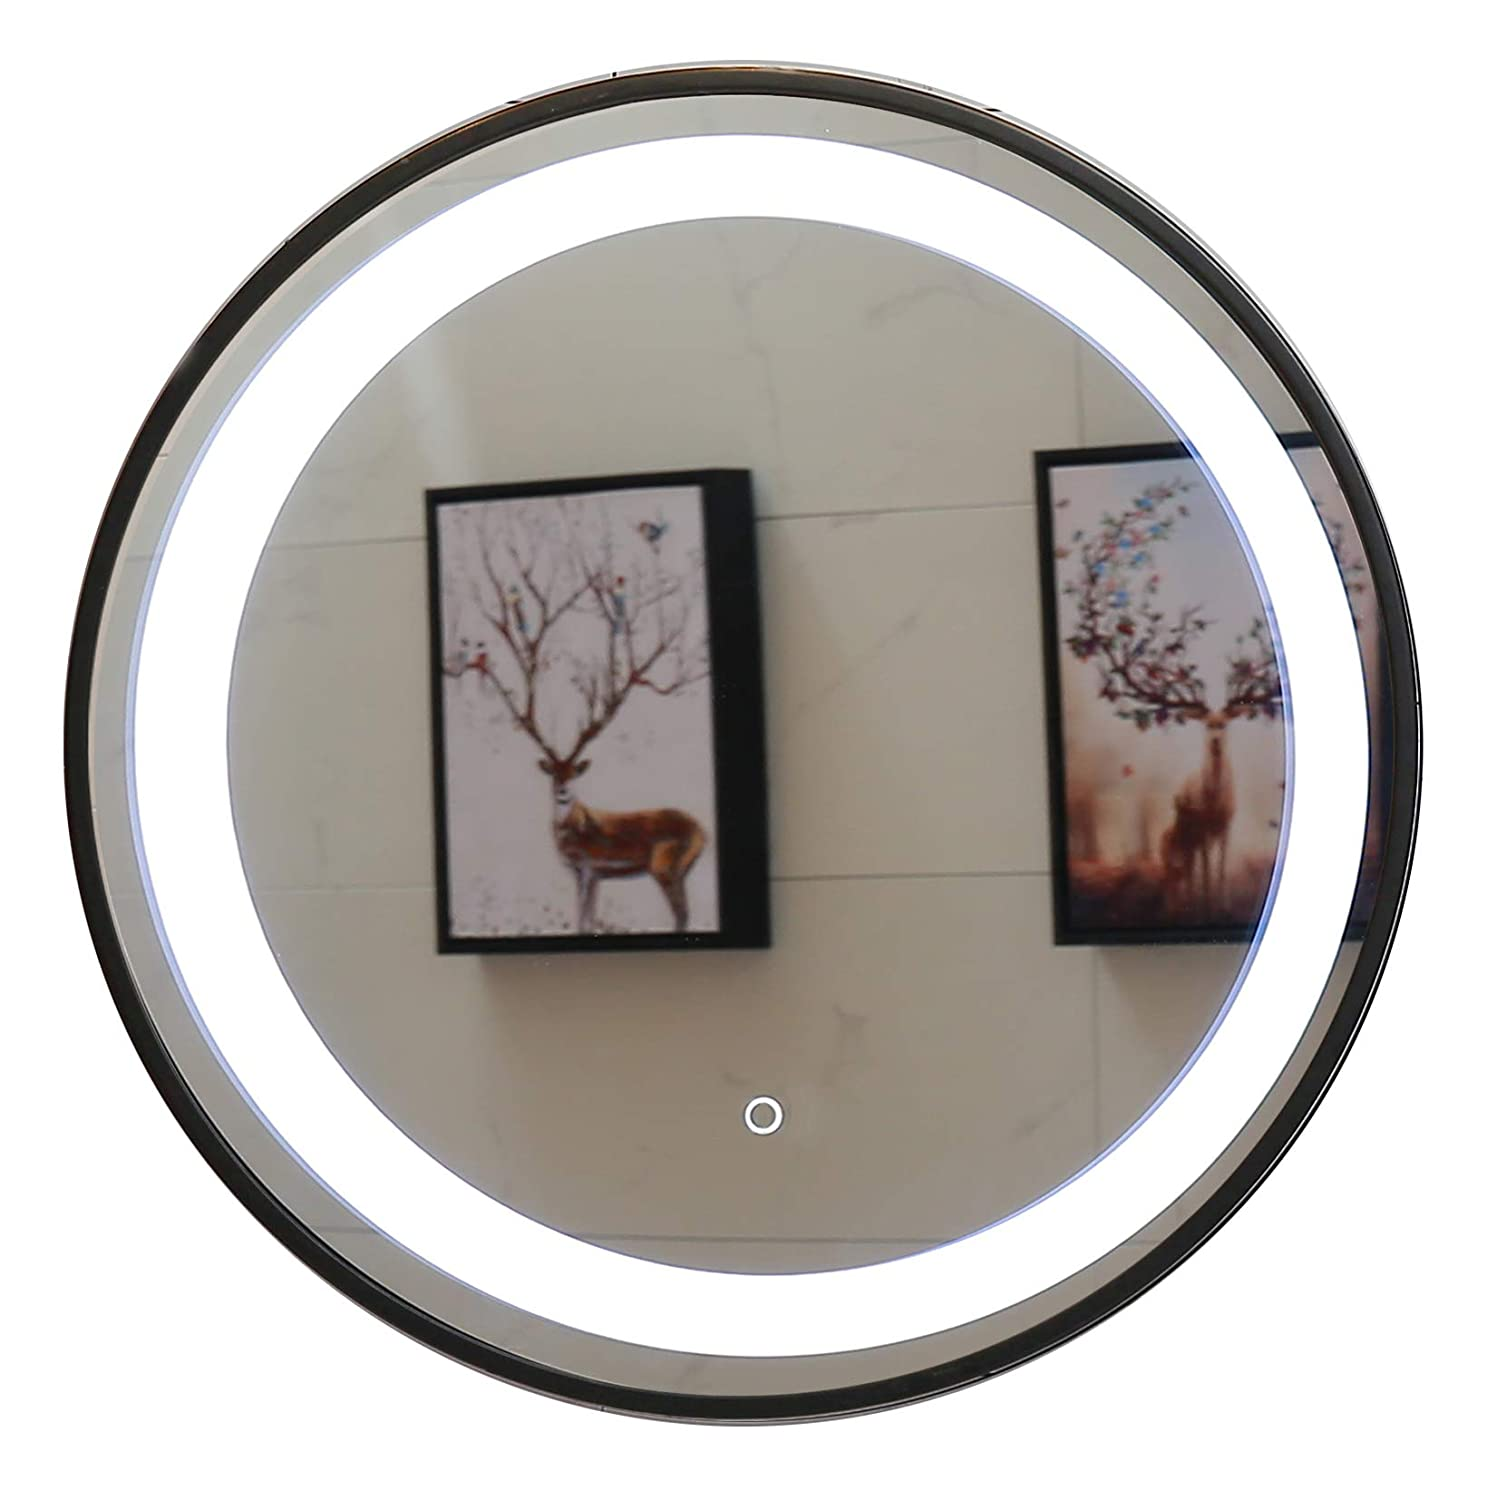 Round Mirror, 23.5 LED Lighted Bathroom Mirror with Dimmable Touch Switch GS047B-D235